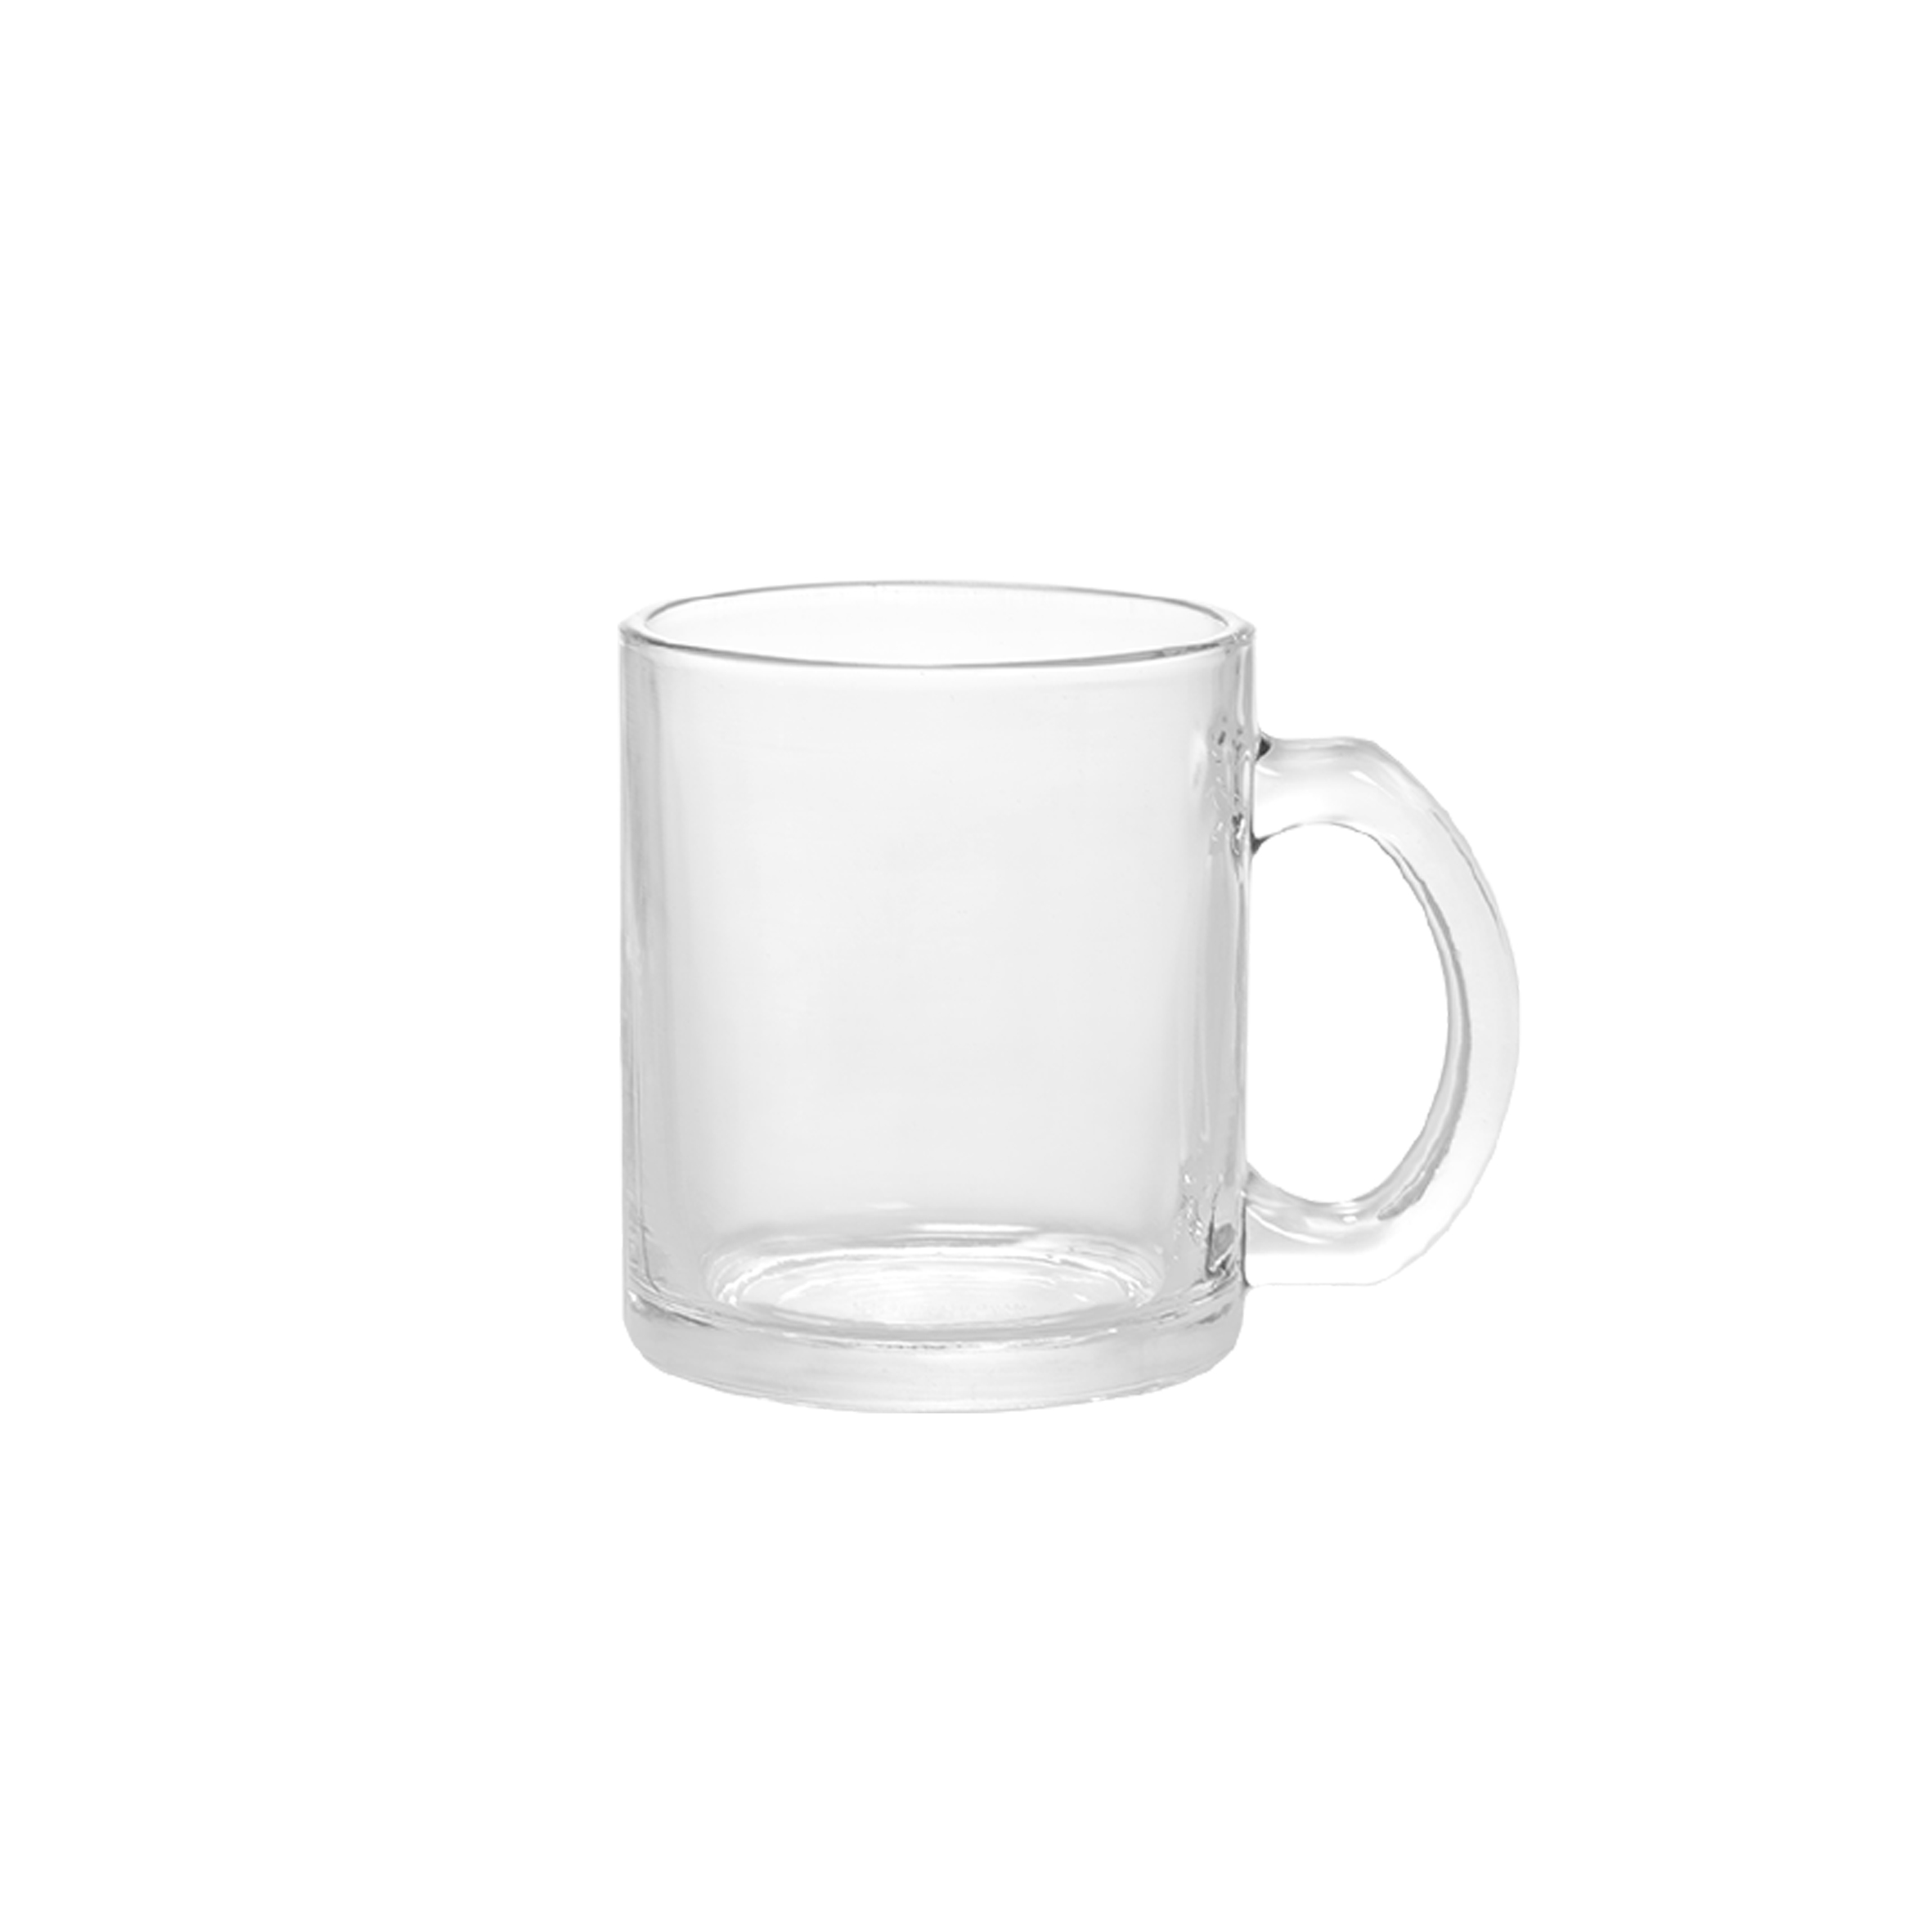 10 oz Clear Glass Beer Cup